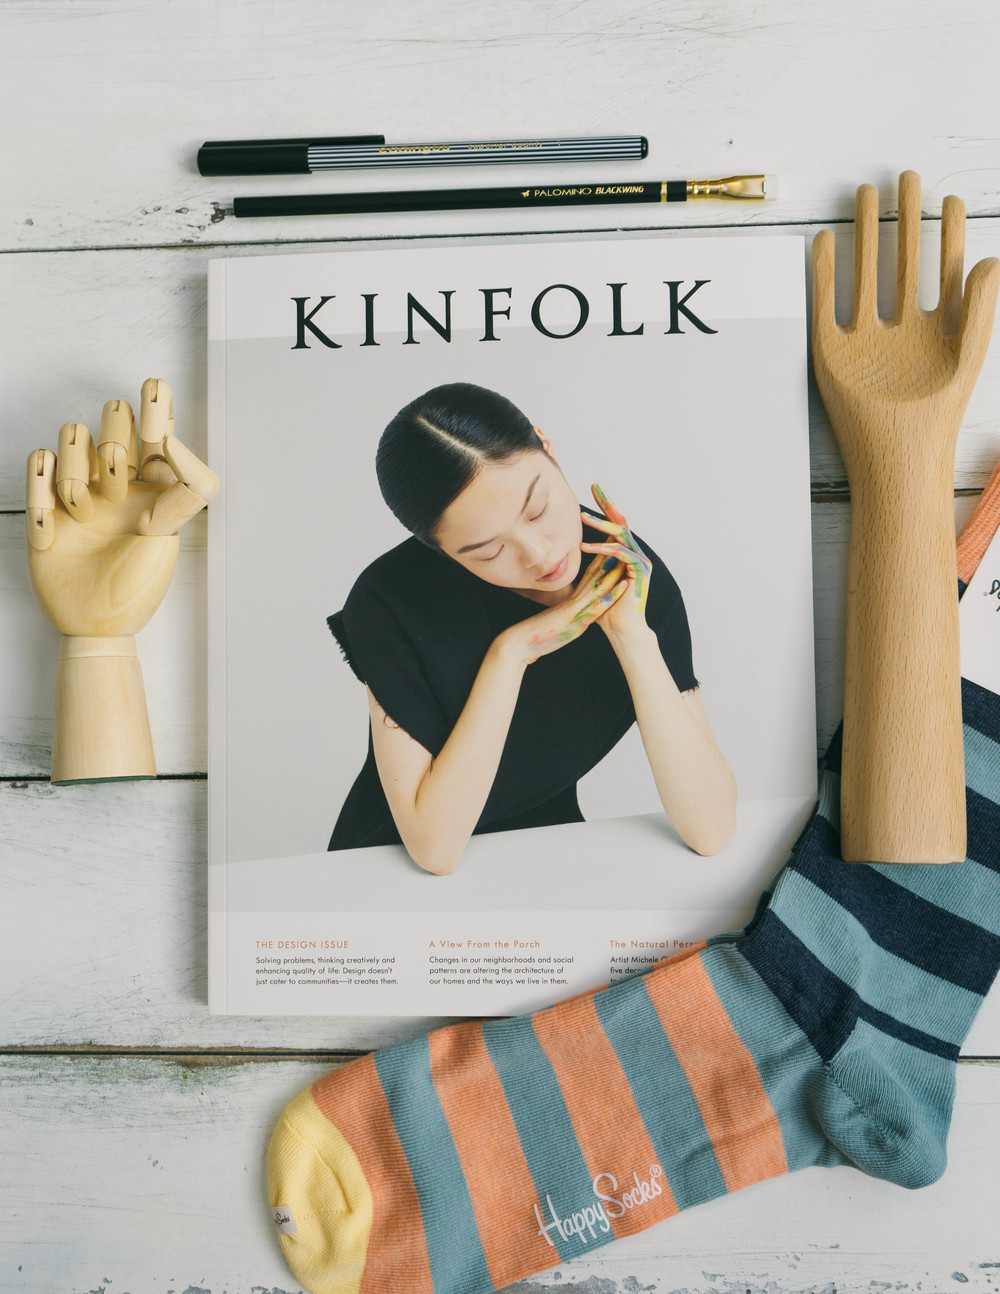 Palomino Blackwing pencil, Kinfolk quarterly magazine - the design issue, Happy socks, and wooden hands: the best from under the tree at www.MarinaSays.com